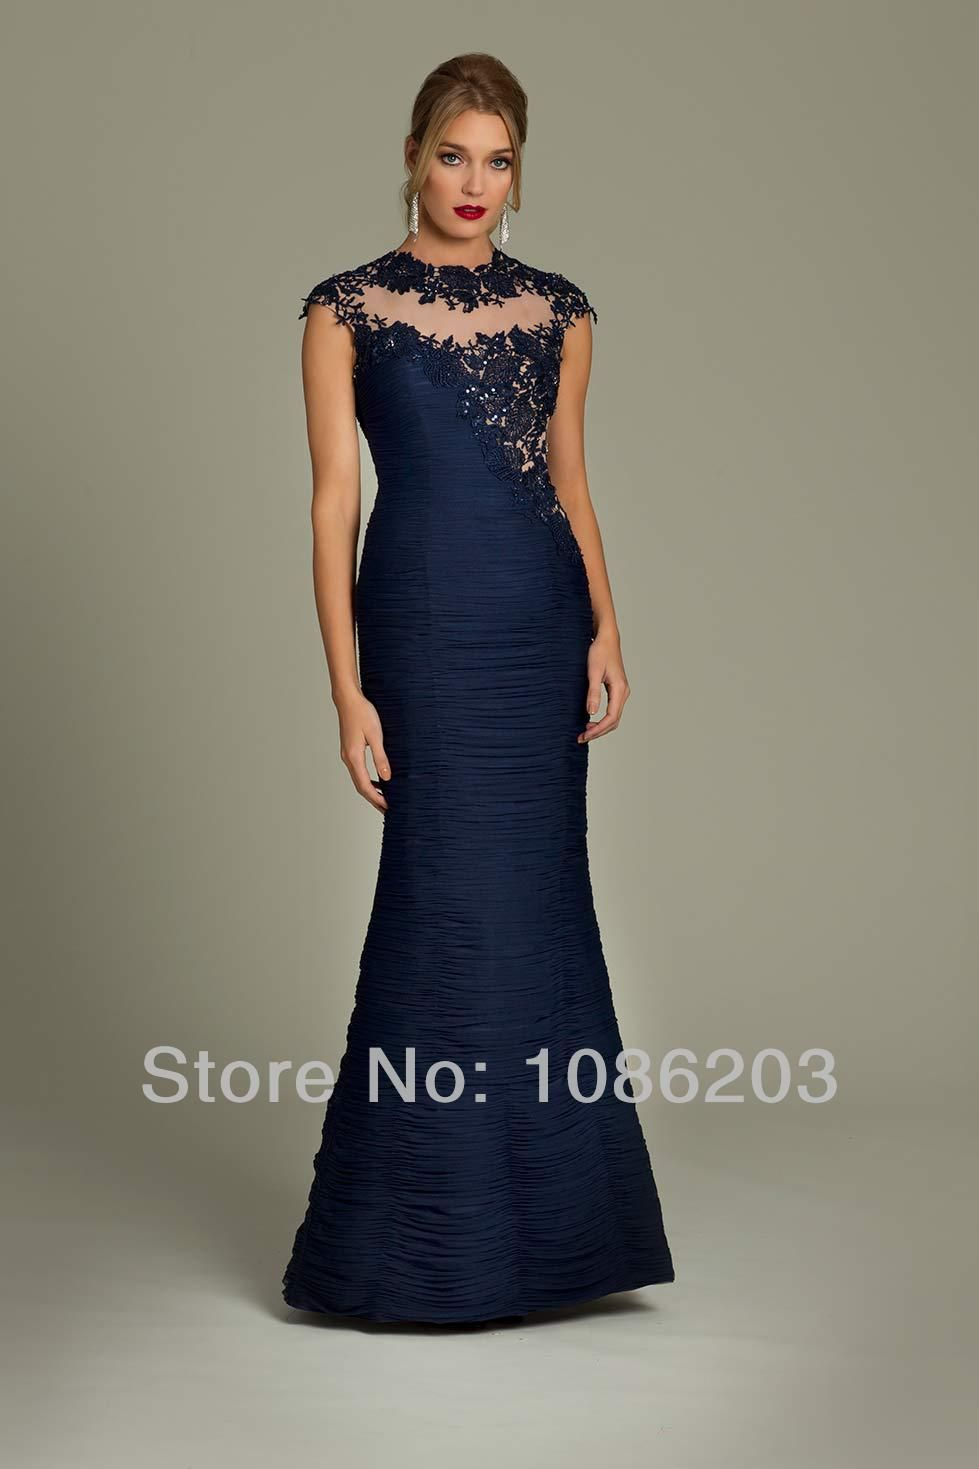 Online Shop Navy Blue Prom Dresses Designer Party Dresses Illusion ...